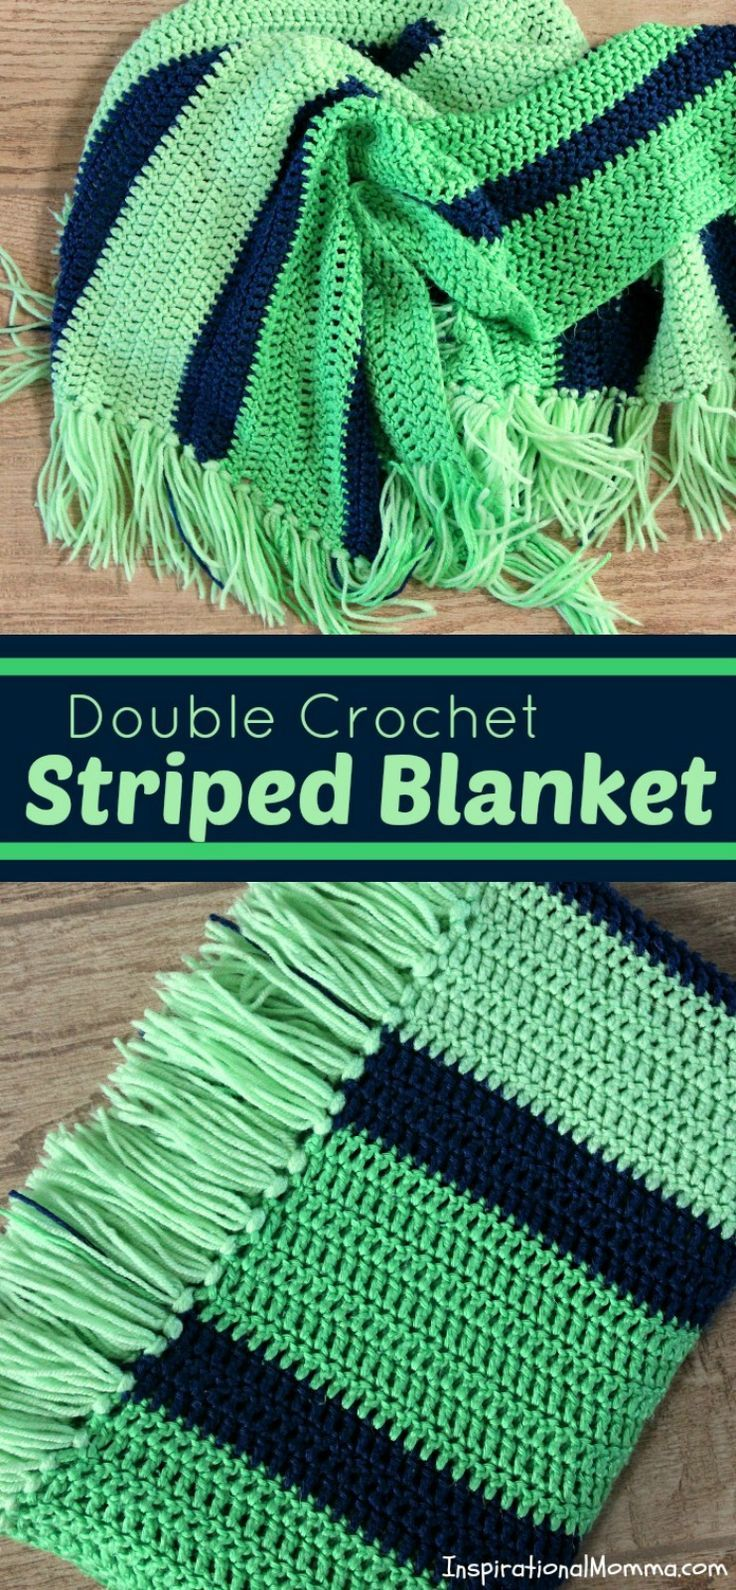 Double Crochet Striped Blanket | Decken, Garn und Häkeln